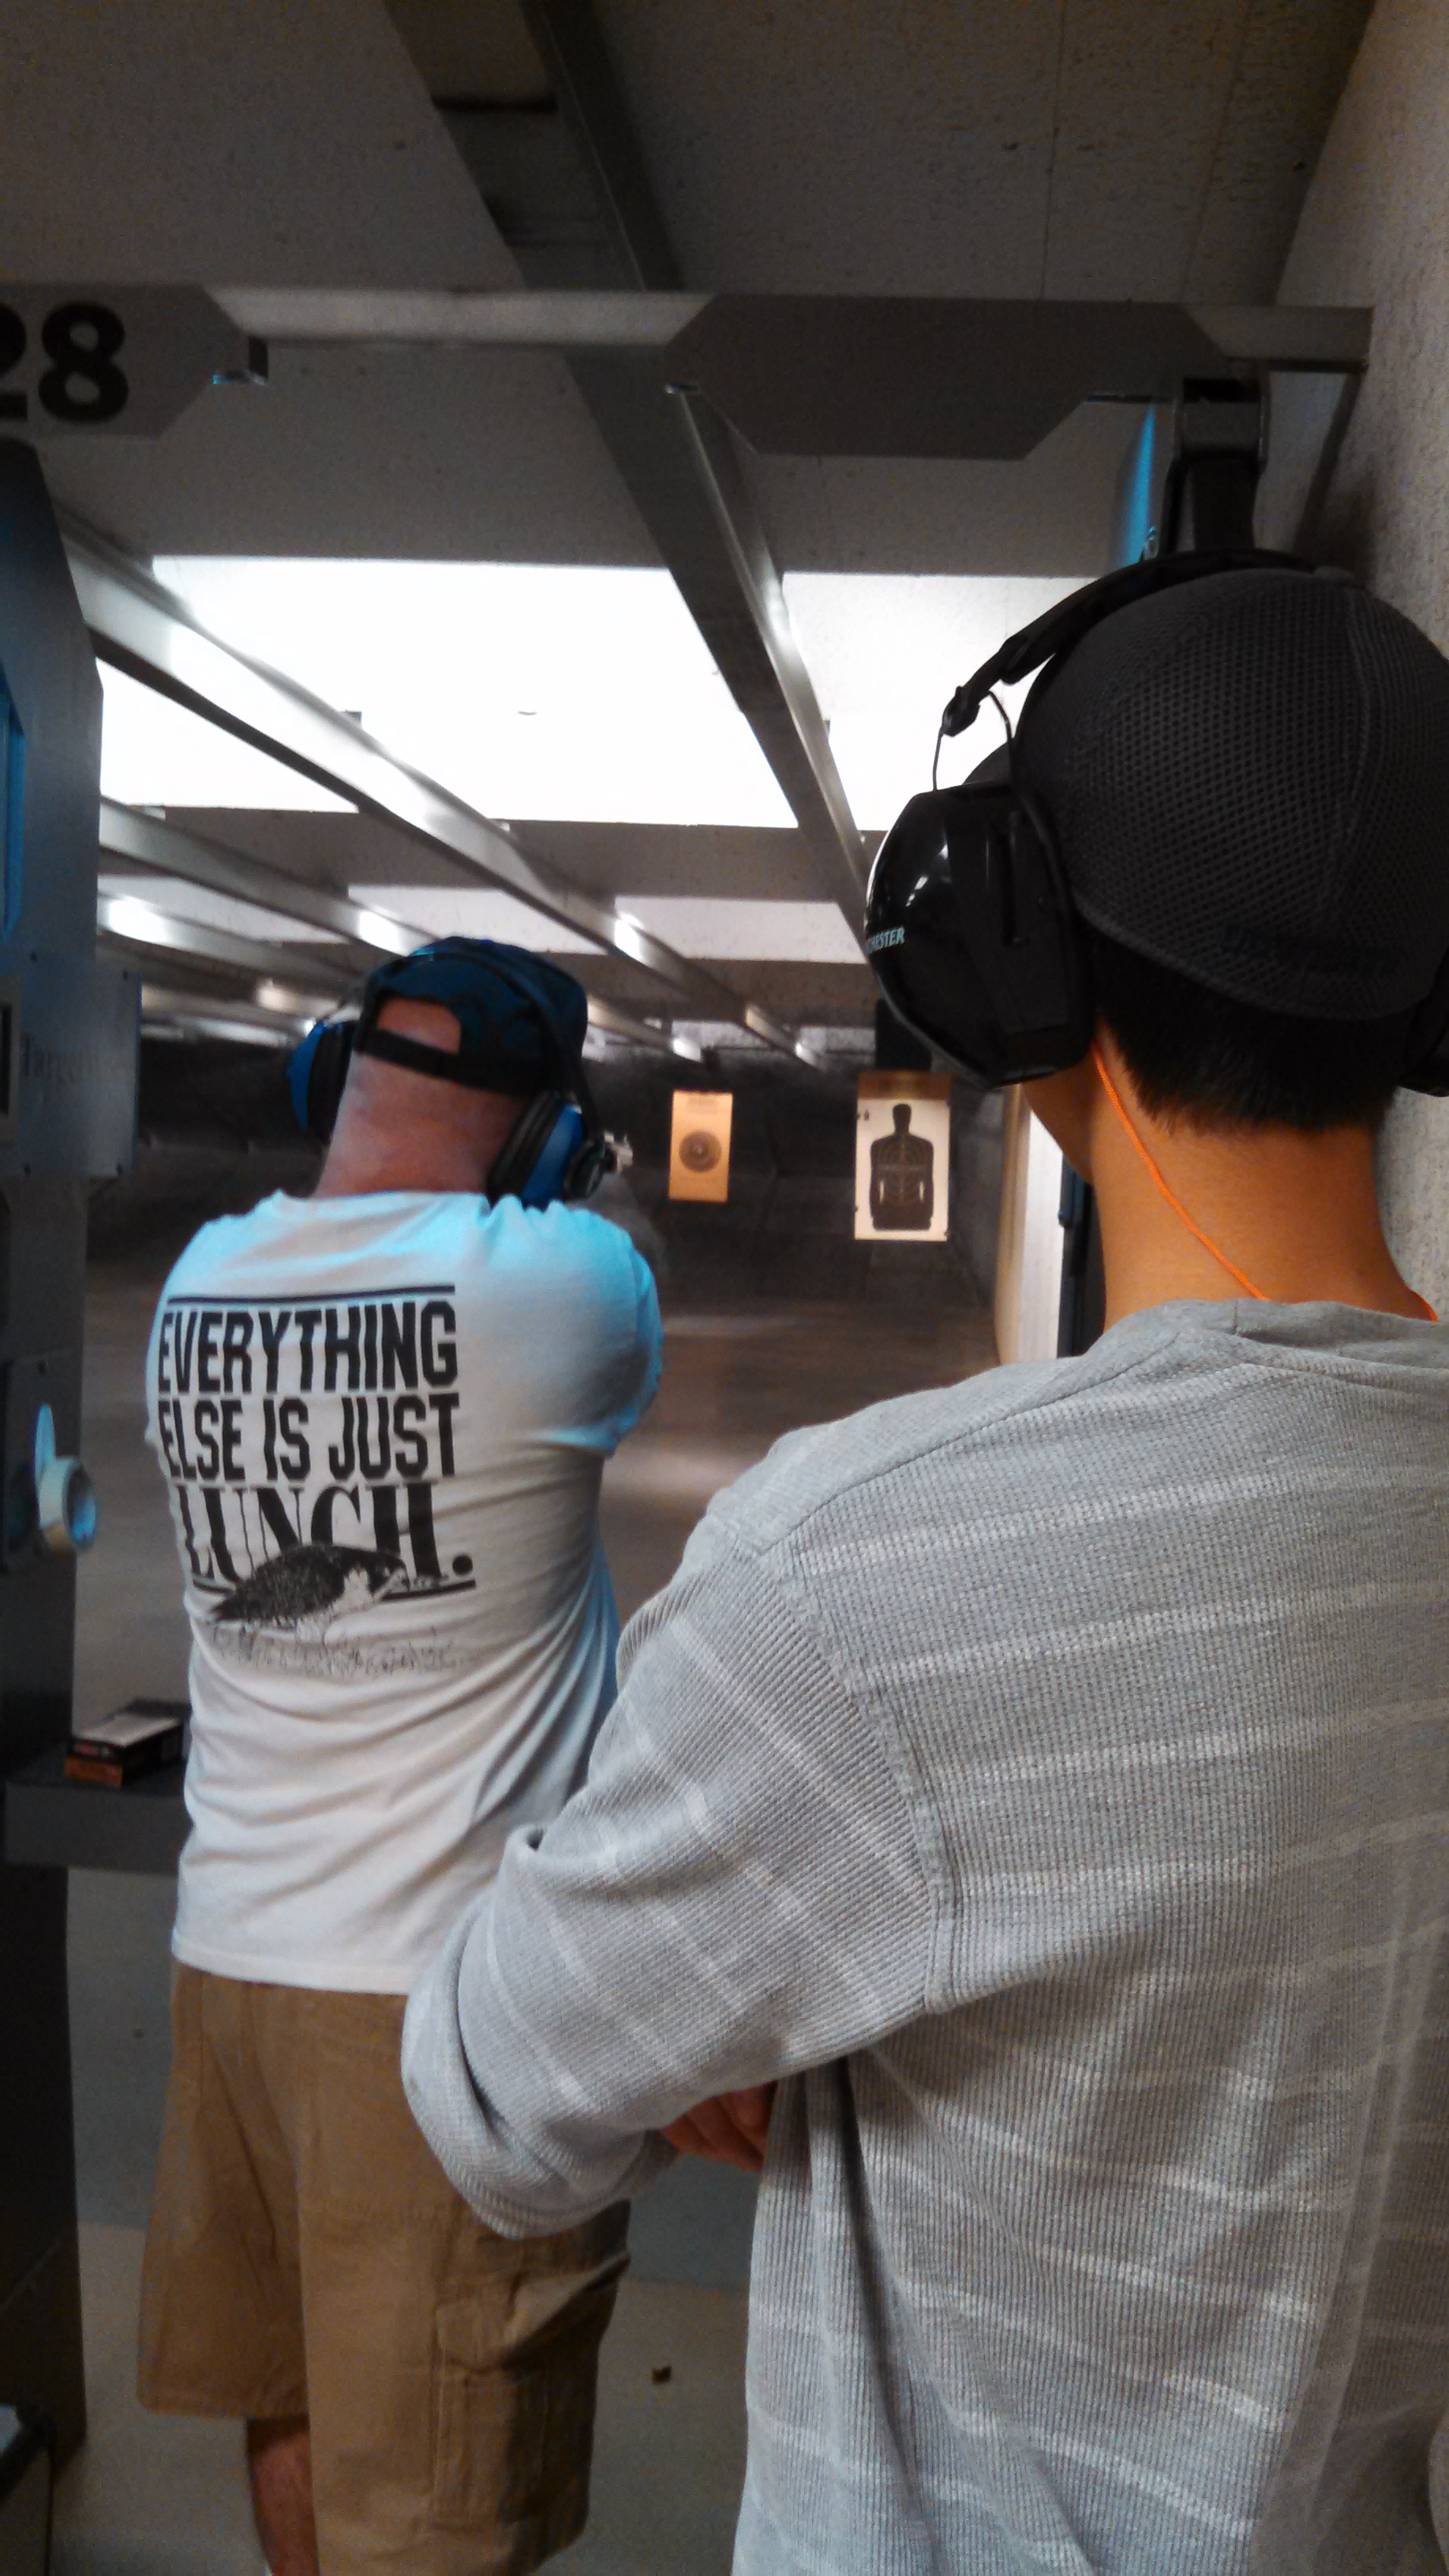 Awesome Day at the Range-img_20140524_085932_069.jpg